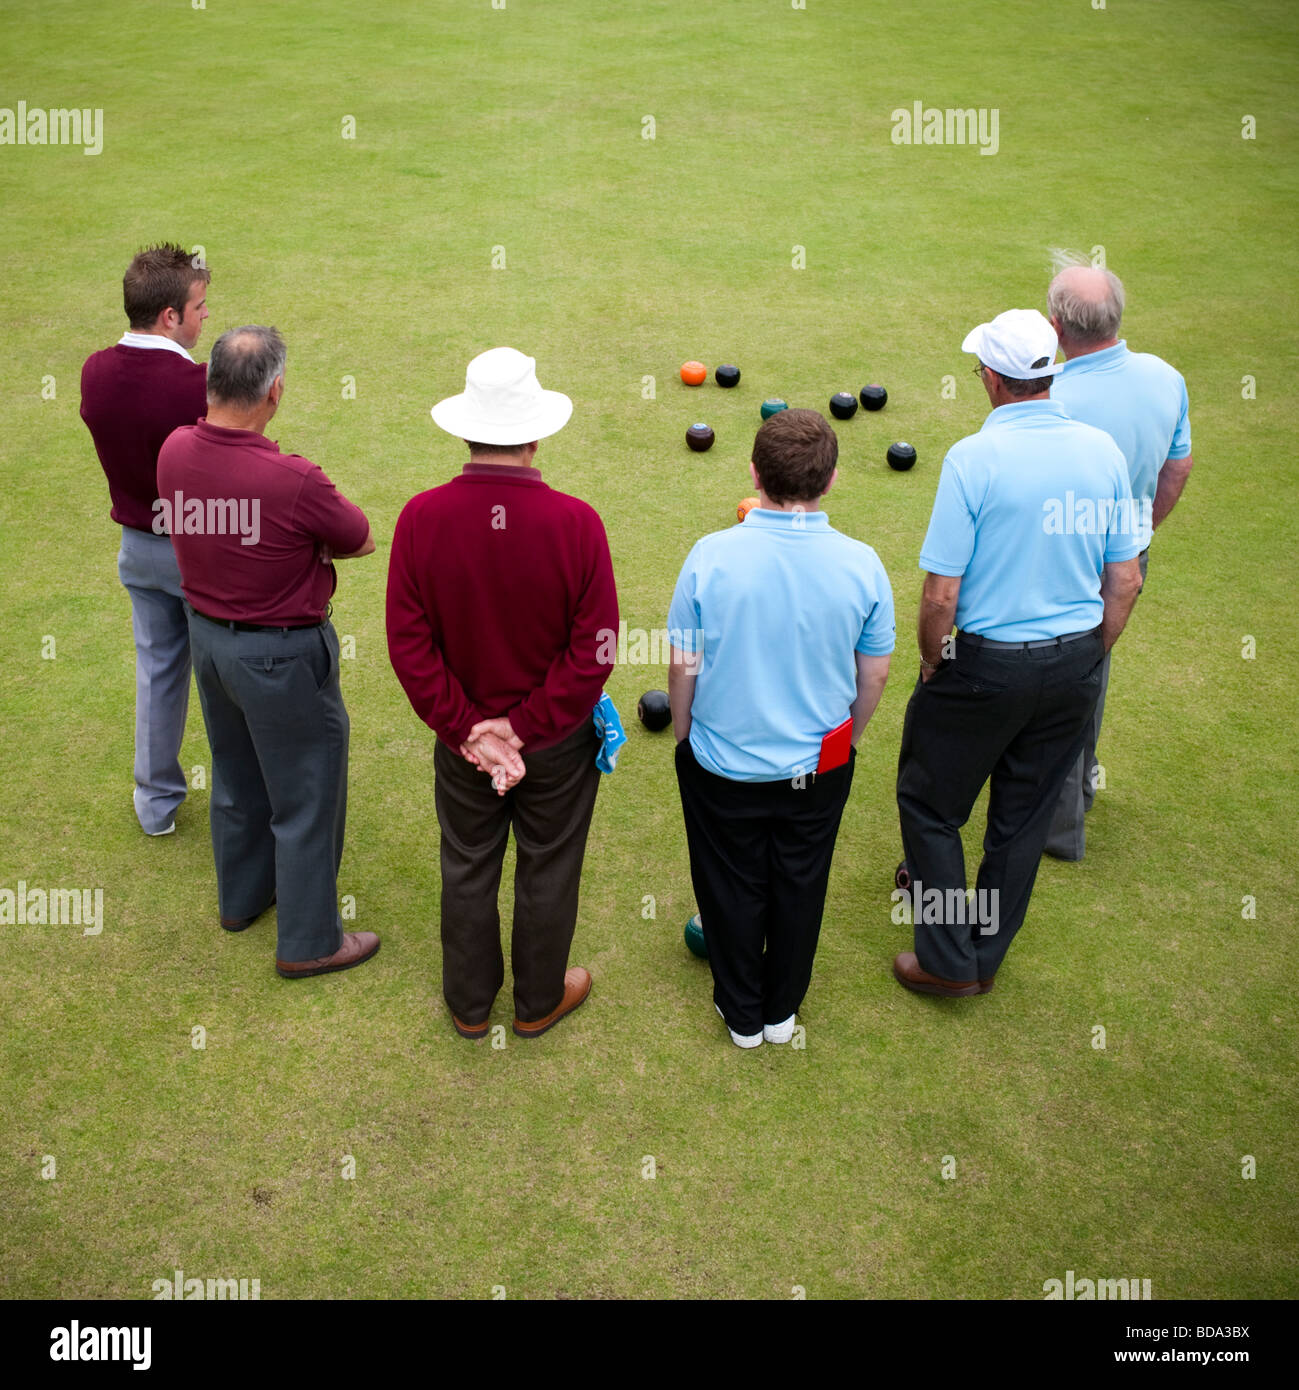 Rear view of 6 men standing in an arc, playing lawn bowls Aberystwyth Wales UK - Stock Image